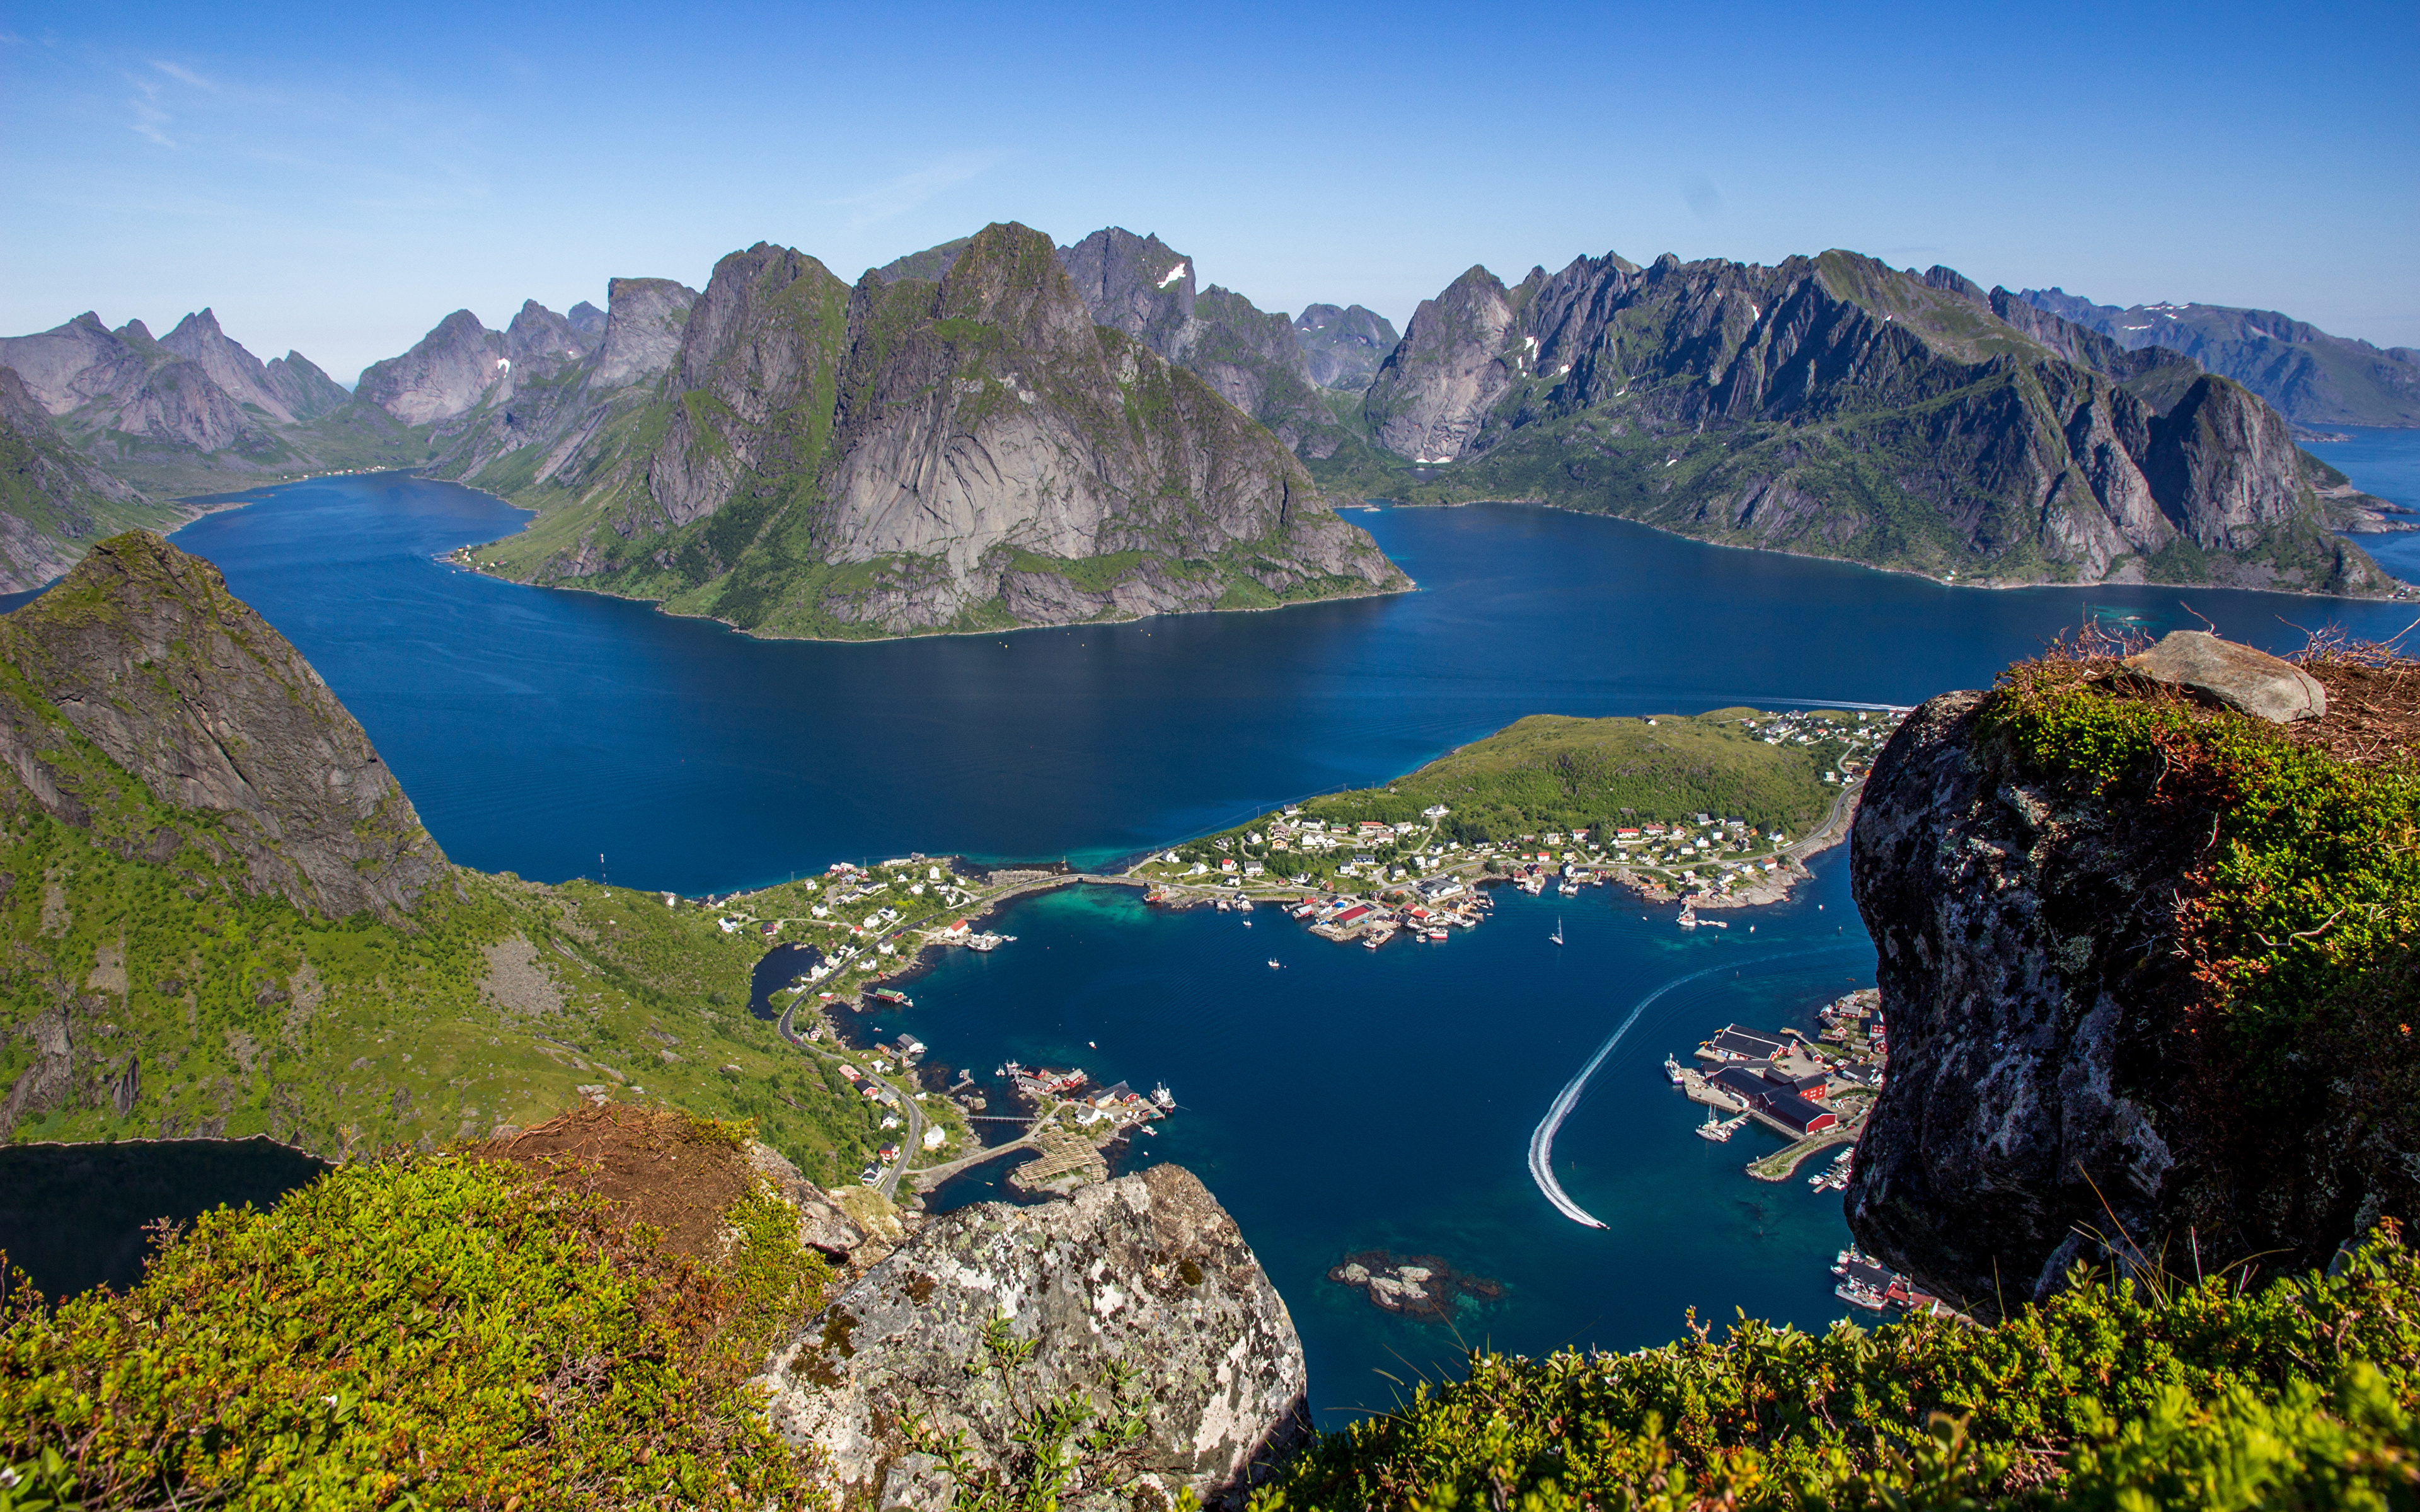 lofoten islands images - HD 3840×2400